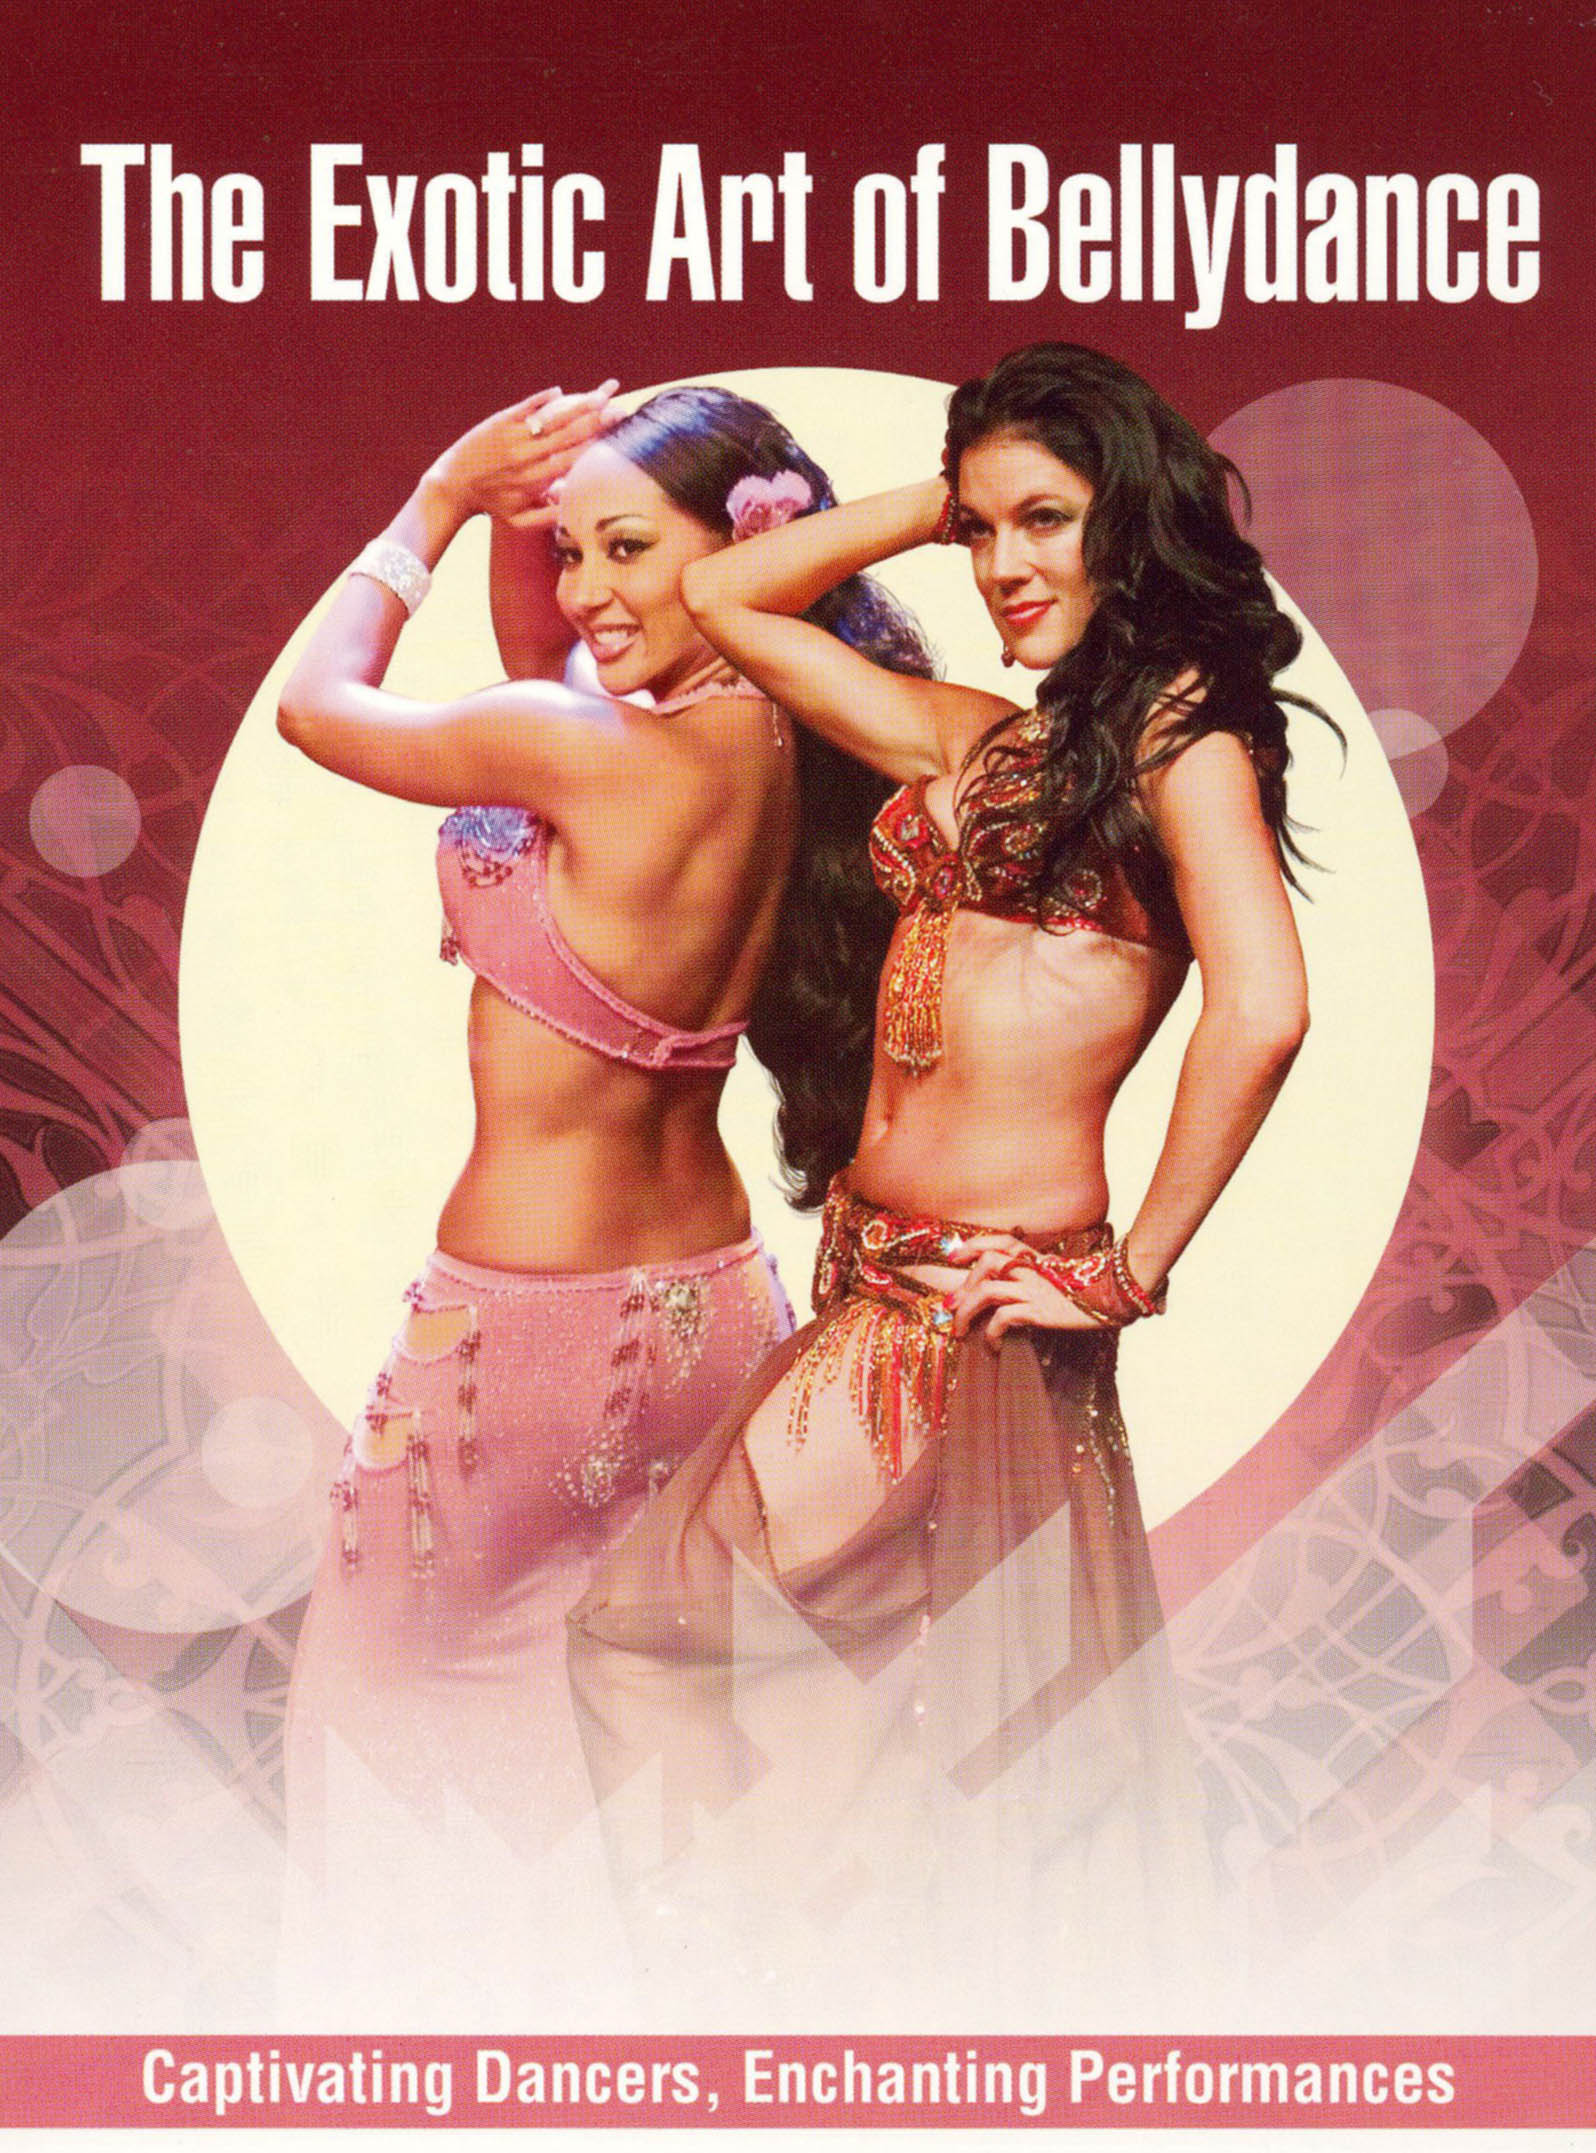 The Exotic Art of Bellydance